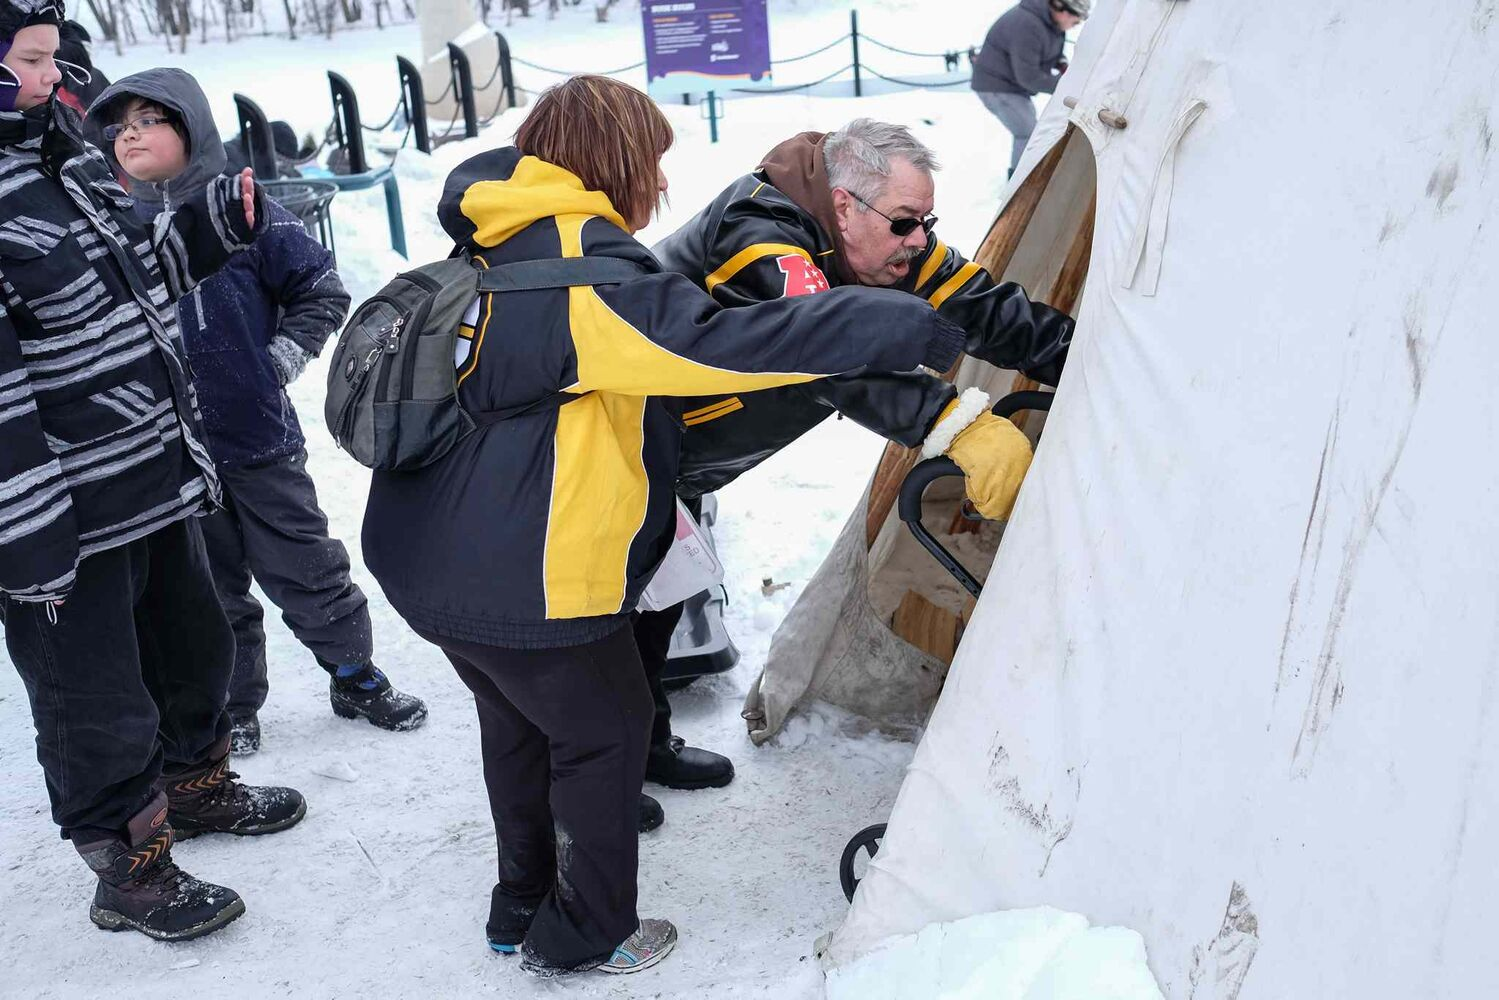 Checking out one of the tee-pee's at The Forks.